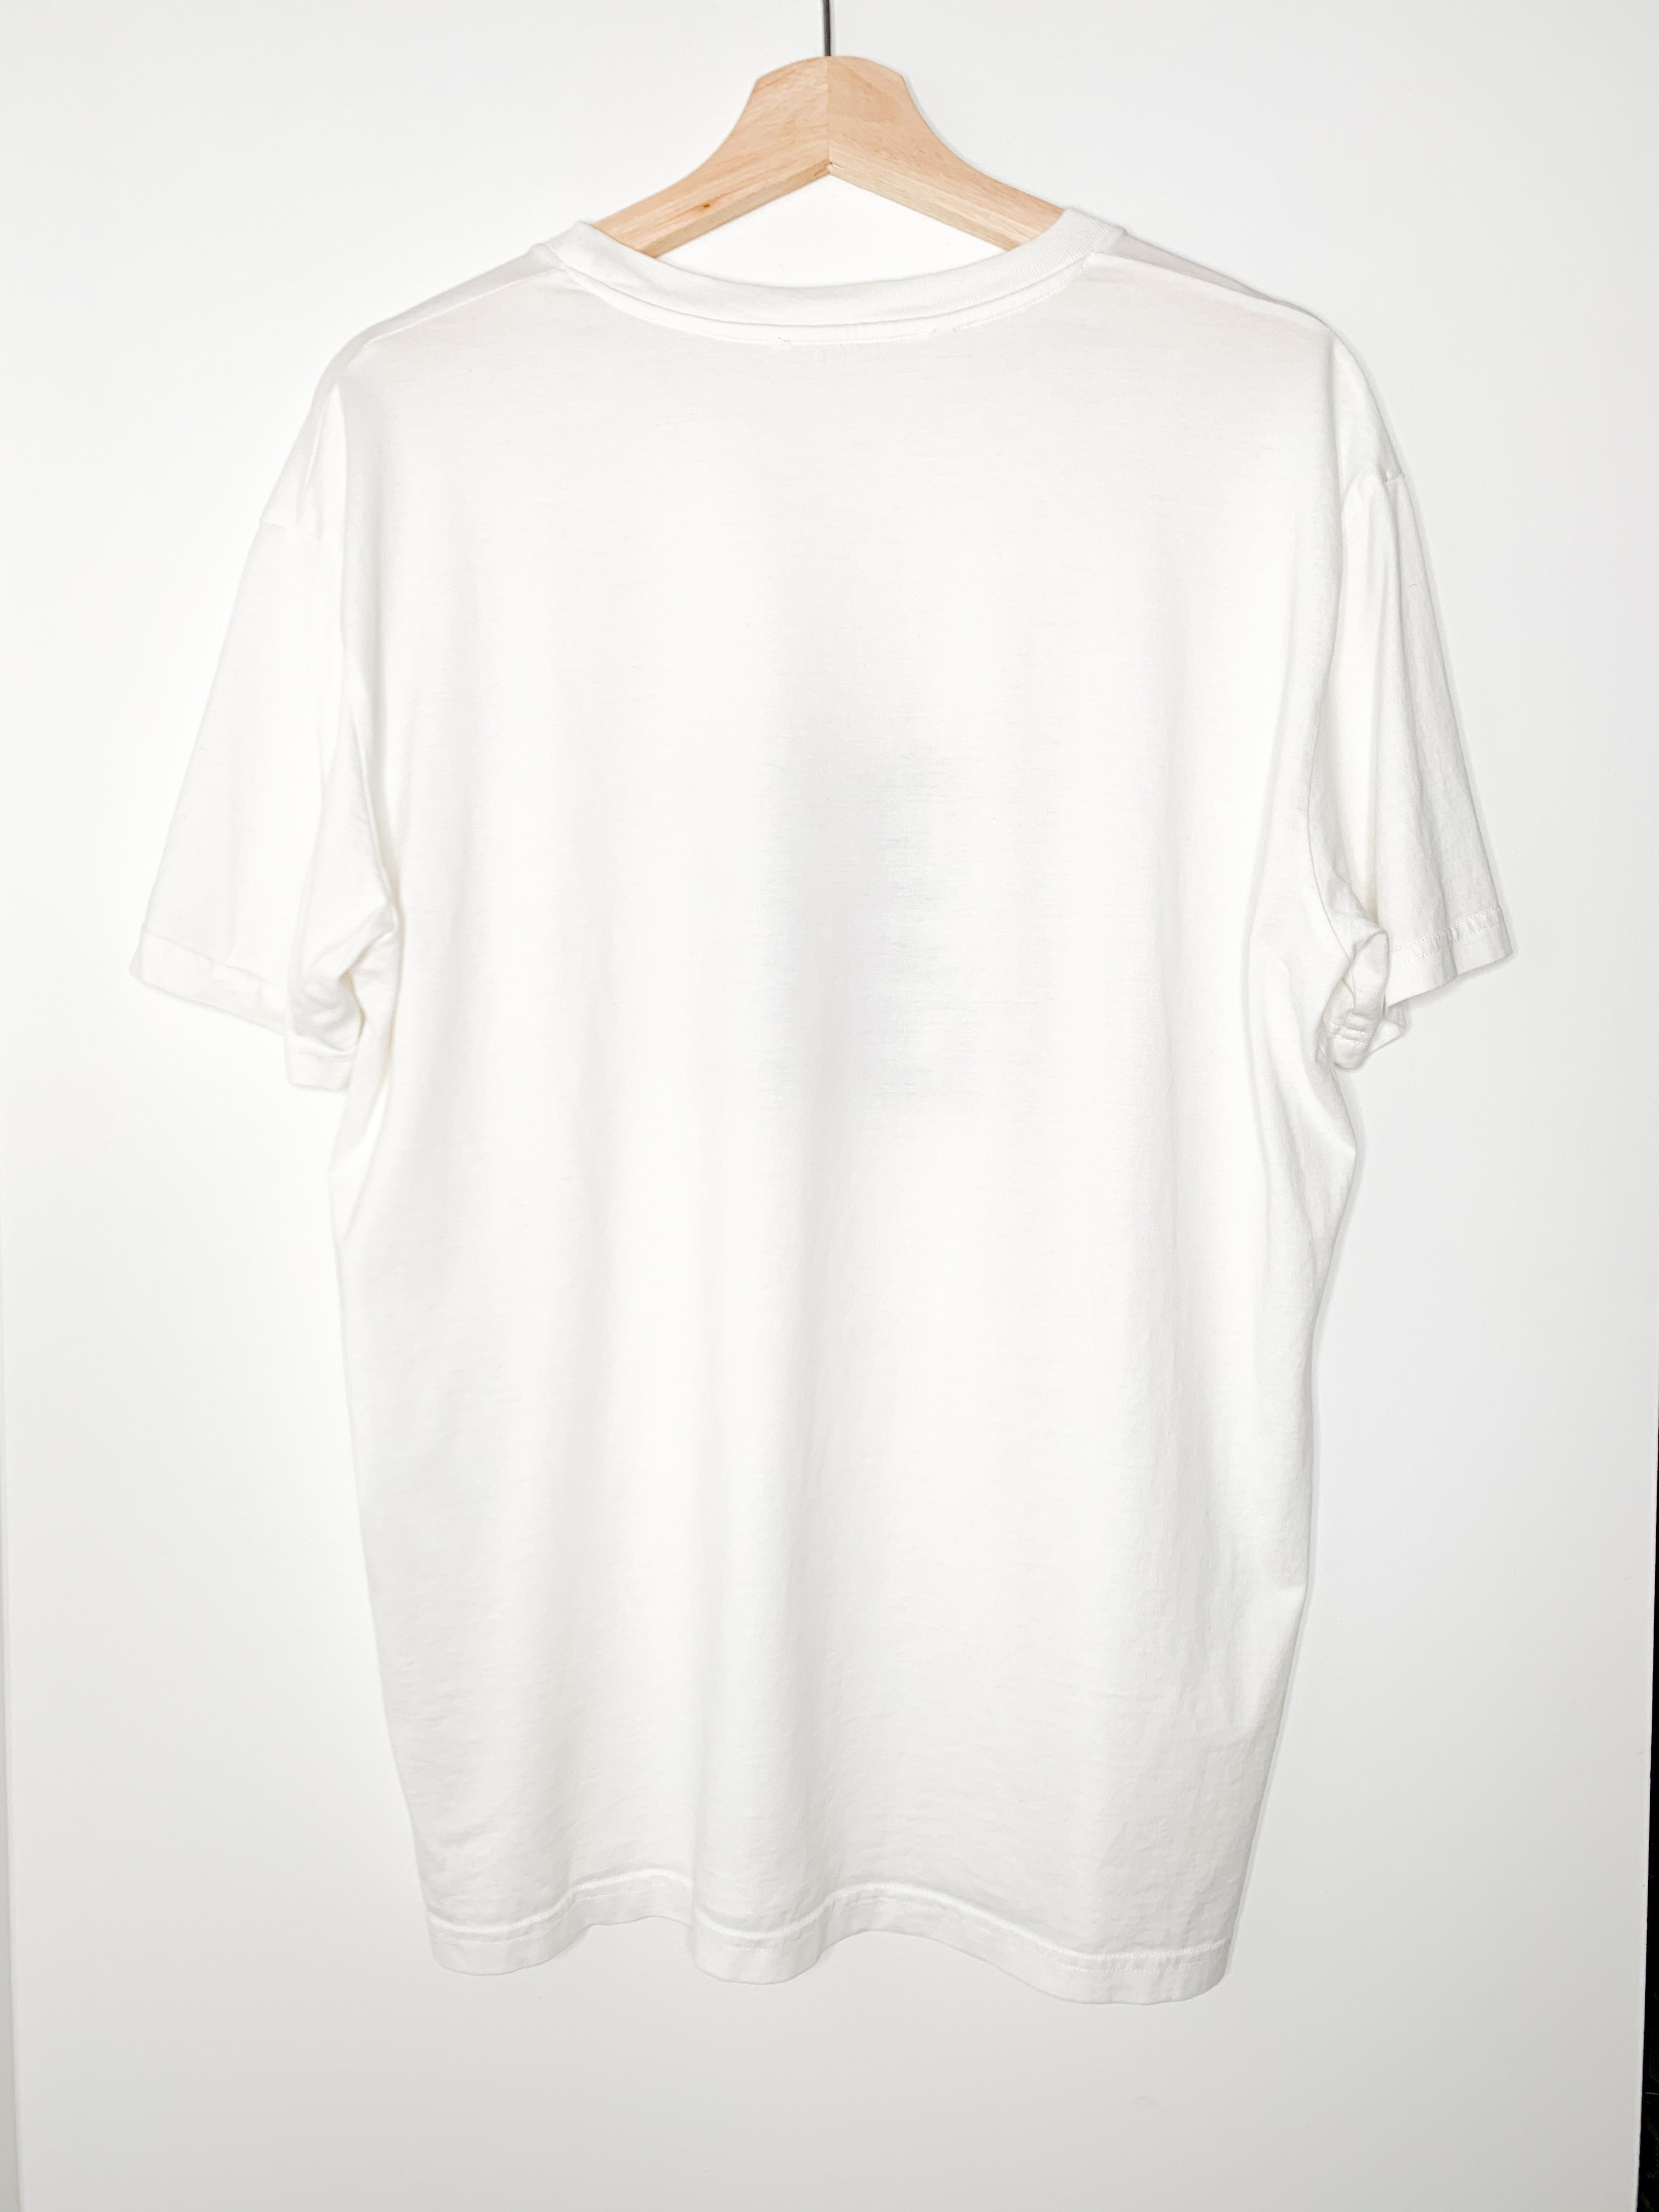 Givenchy 4G Flame T-Shirt Sz S